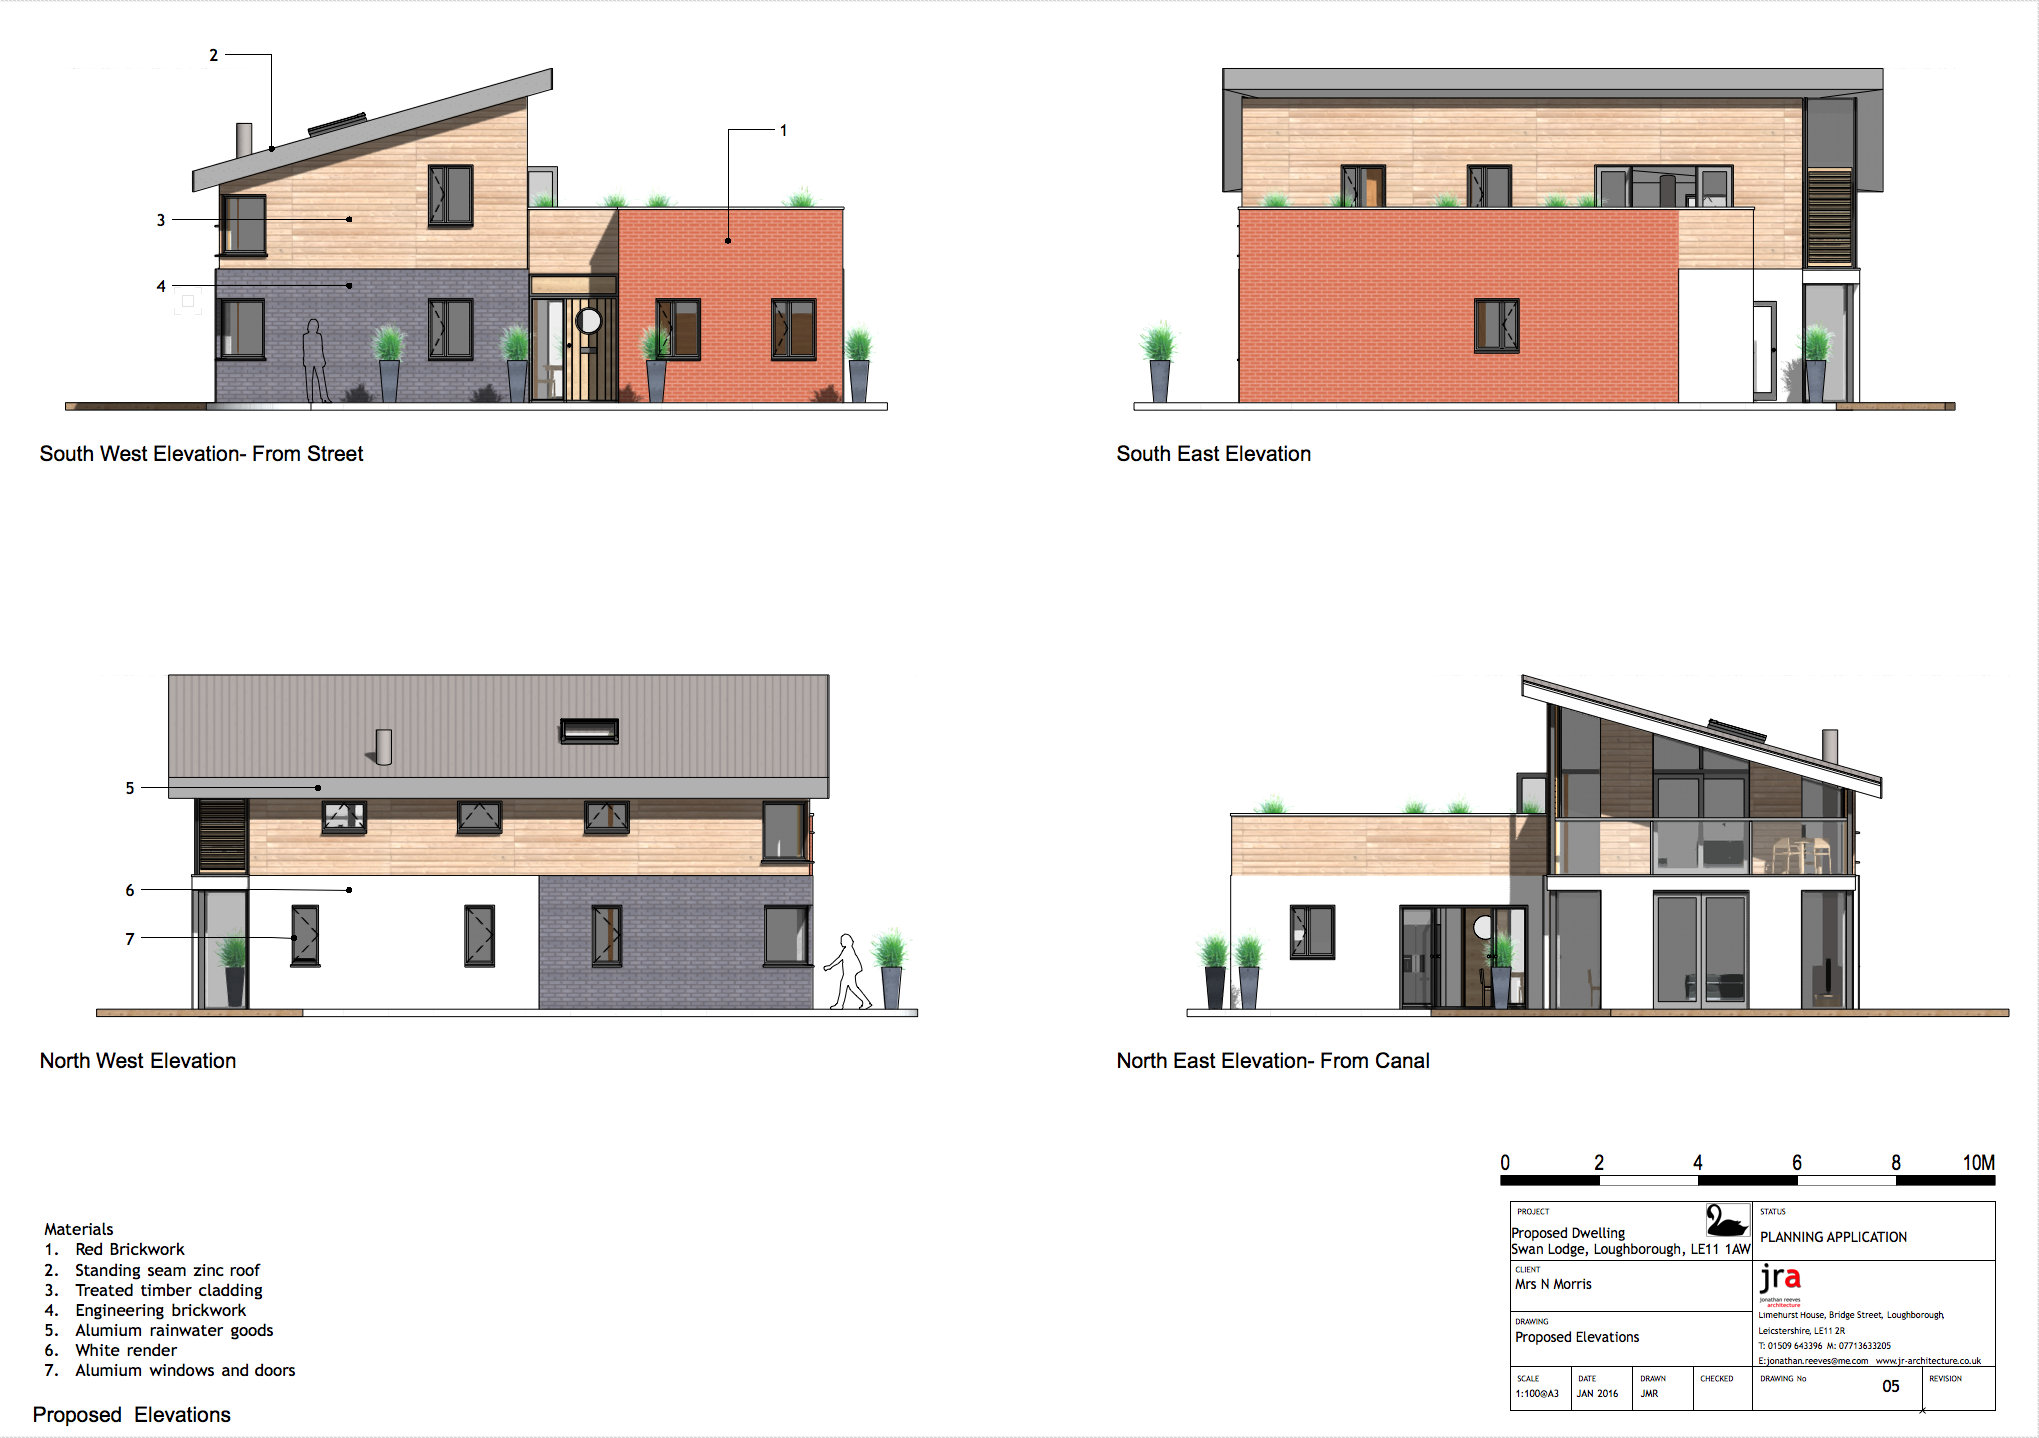 Ordinary Building Plans Loughborough Part - 4: Based In Our Studio In Loughborough, Leicestershire We Work On A Wide  Variety Of Projects Across The East Midlands, And Across The UK